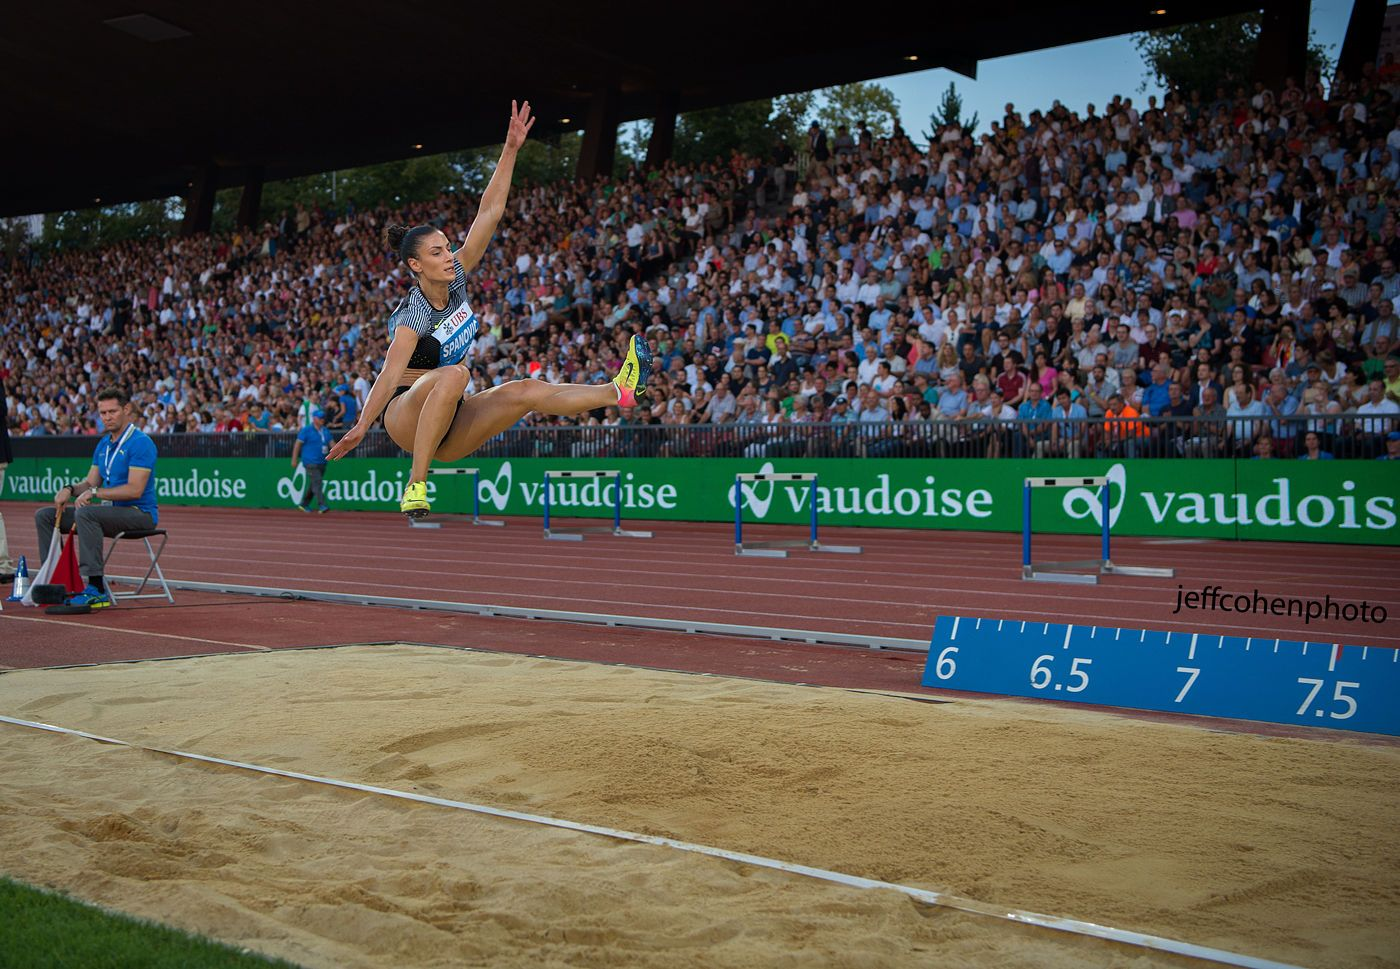 1r2016_weltklasse_zurich_spanovic_lj_jeff_cohen_photo_2576_web.jpg